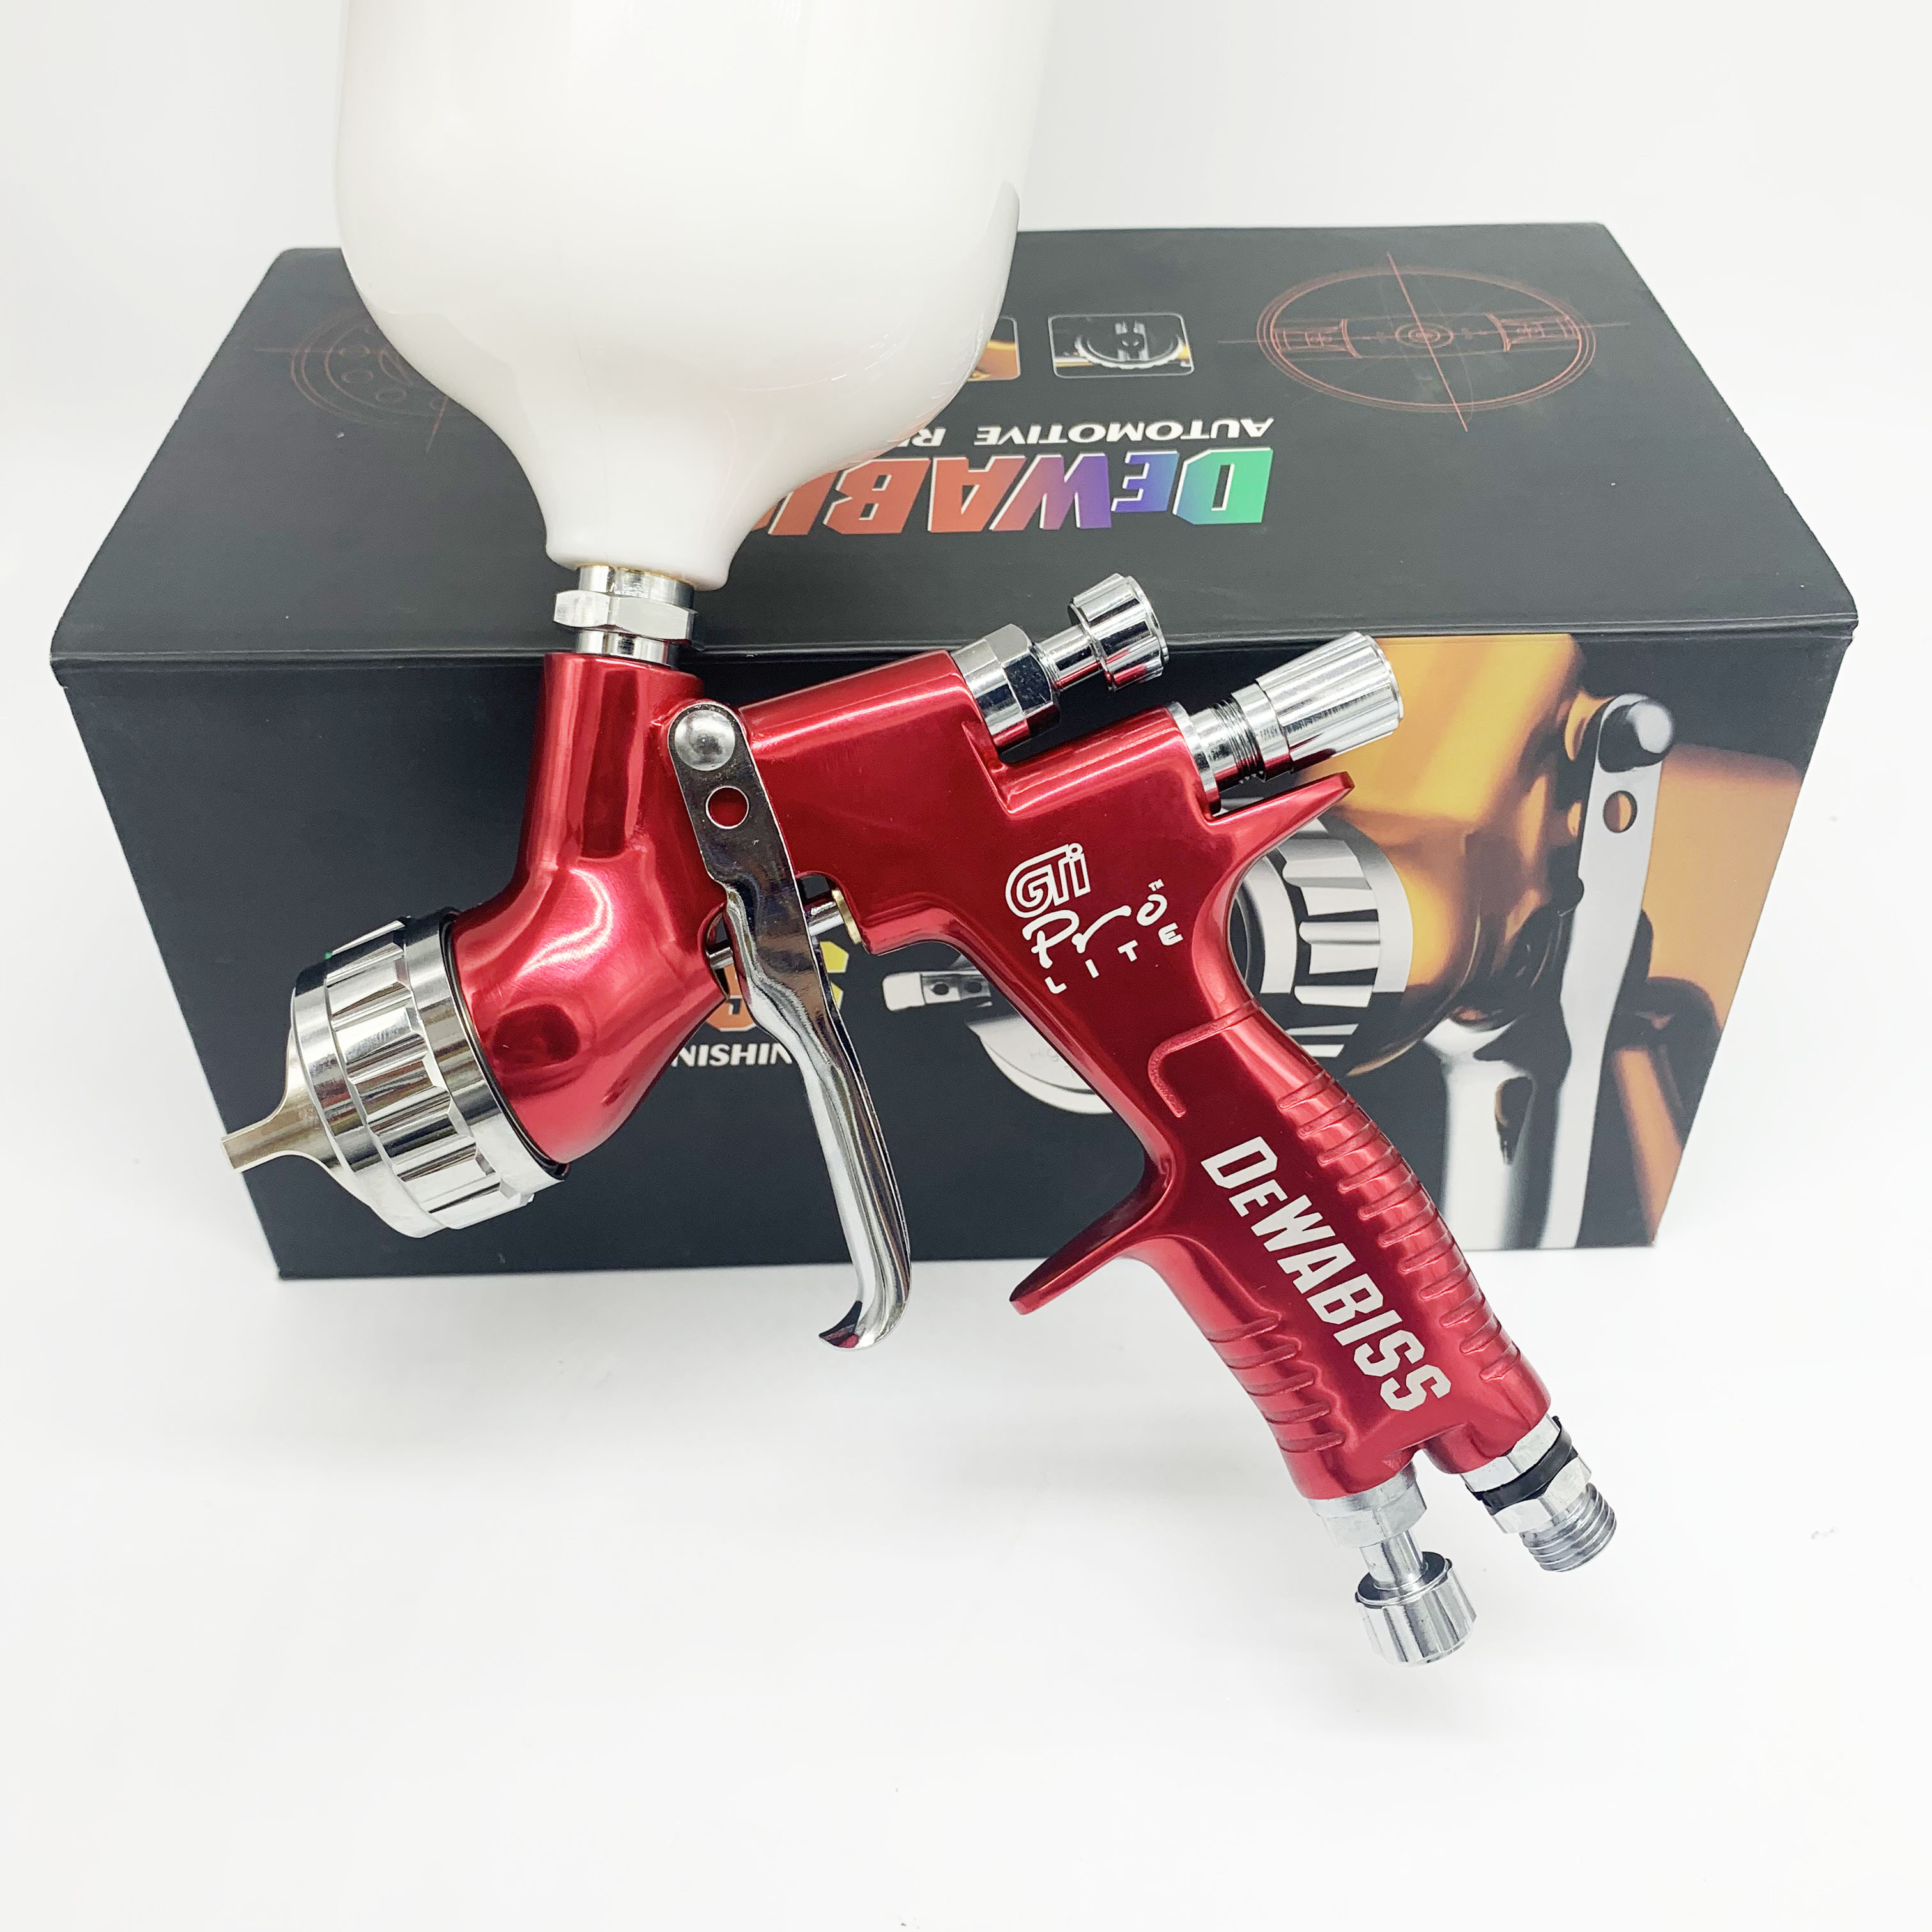 HV30 Spray Gun Gti Pro High Atomize 1.3mm HVLP Airless Spray Painting Car Paint Airbrush Tool  For Water Based Paint Sprayer